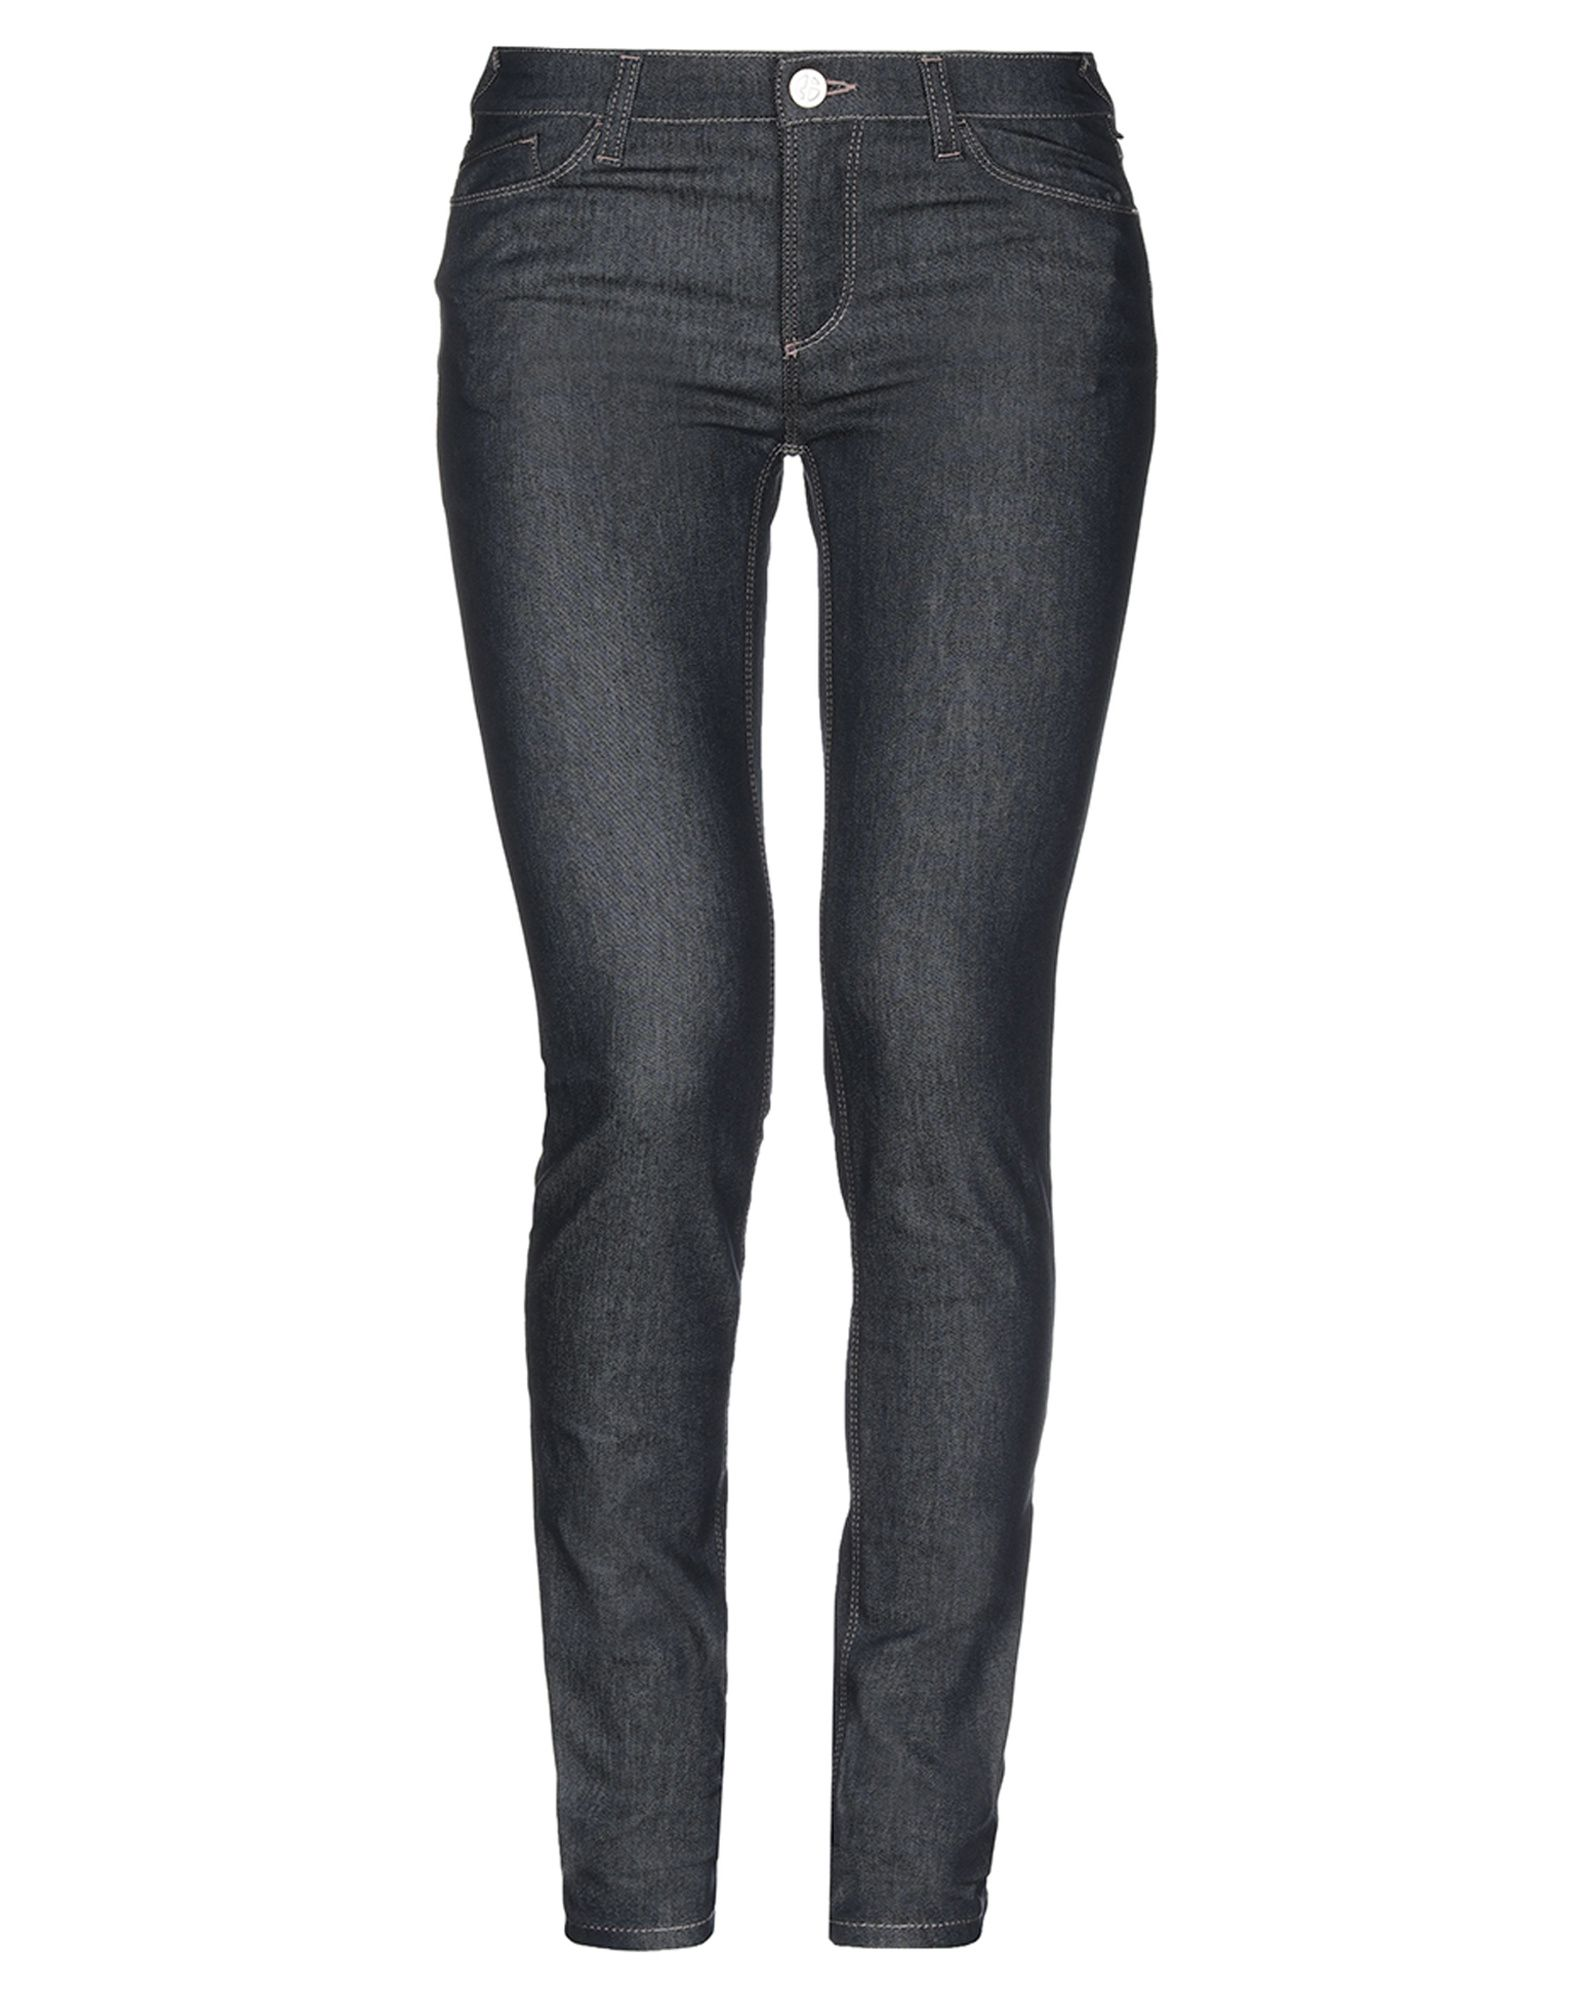 GIORGIO ARMANI Jeans. denim, logo, solid color, medium wash, mid rise, front closure, button, zip, multipockets, stretch, slim fit. 67% Cotton, 31% Polyester, 2% Elastane